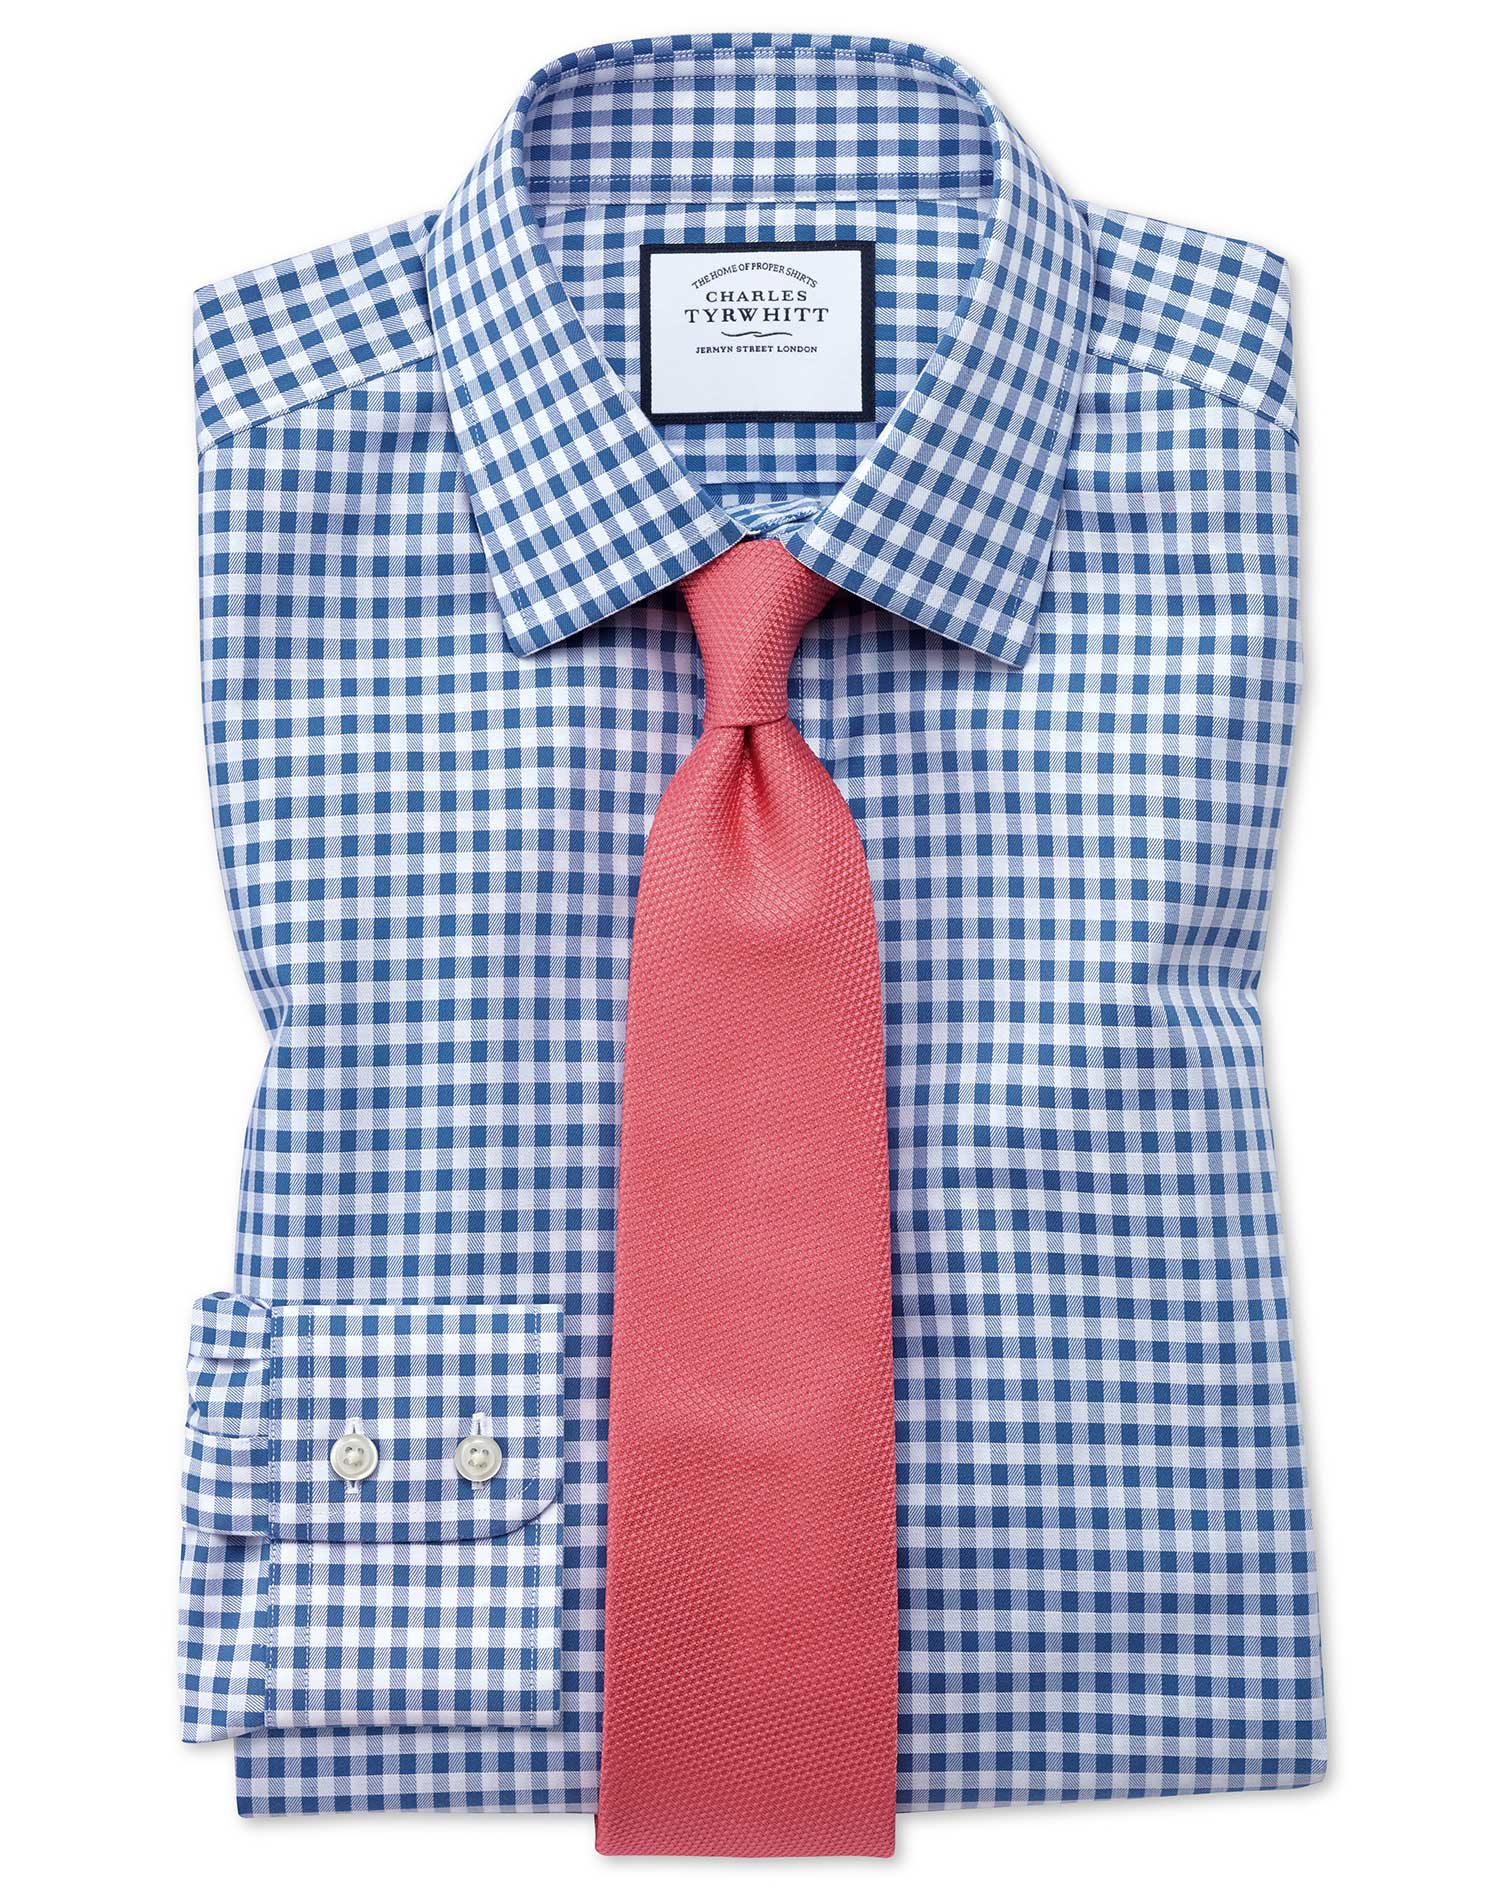 Classic Fit Non-Iron Gingham Mid Blue Cotton Formal Shirt Single Cuff Size 16/34 by Charles Tyrwhitt